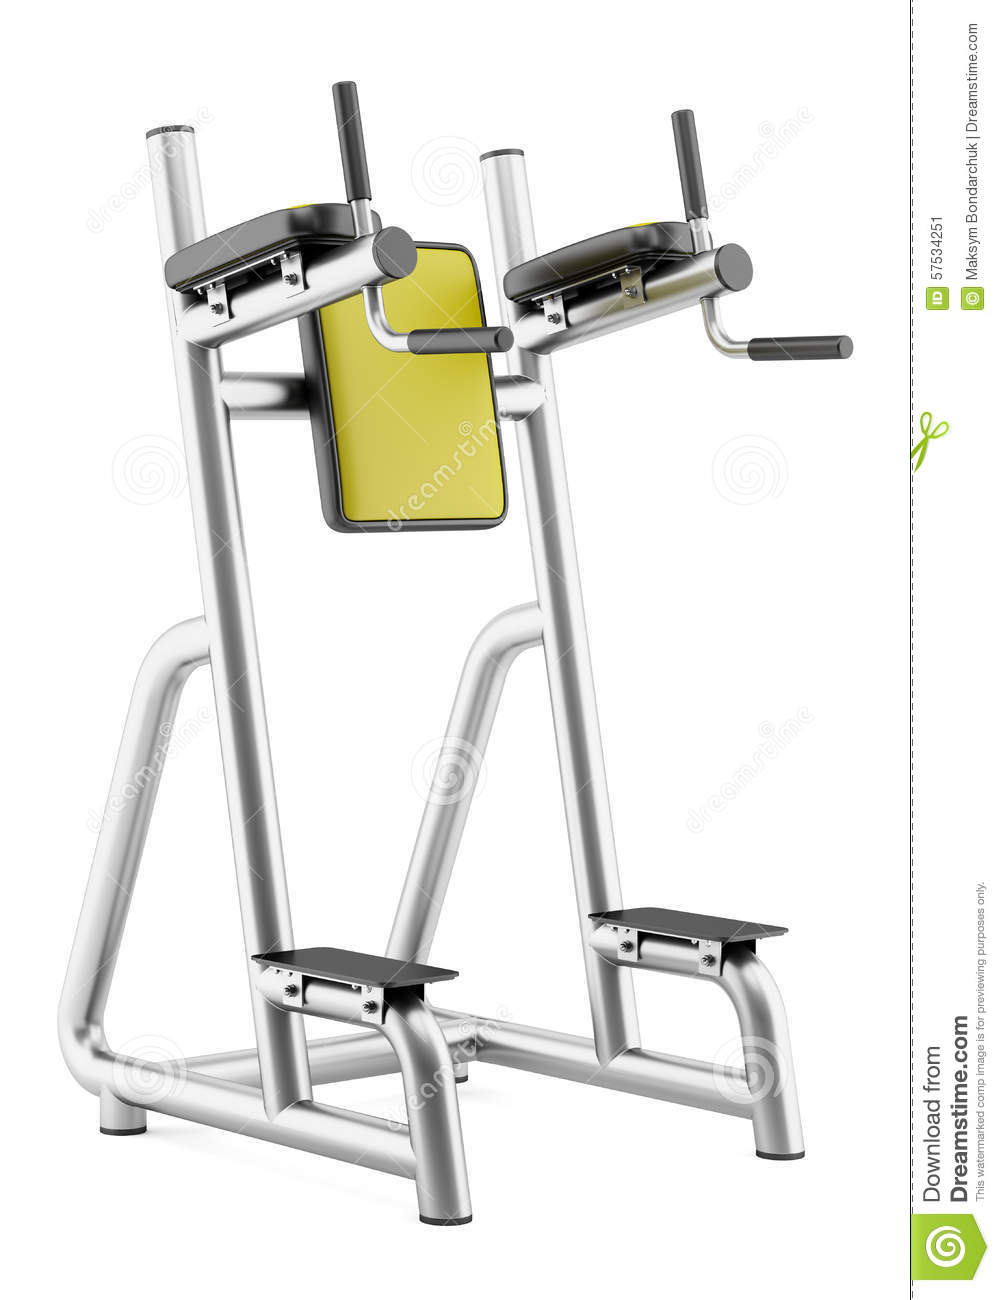 Gym roman chair isolated on white background